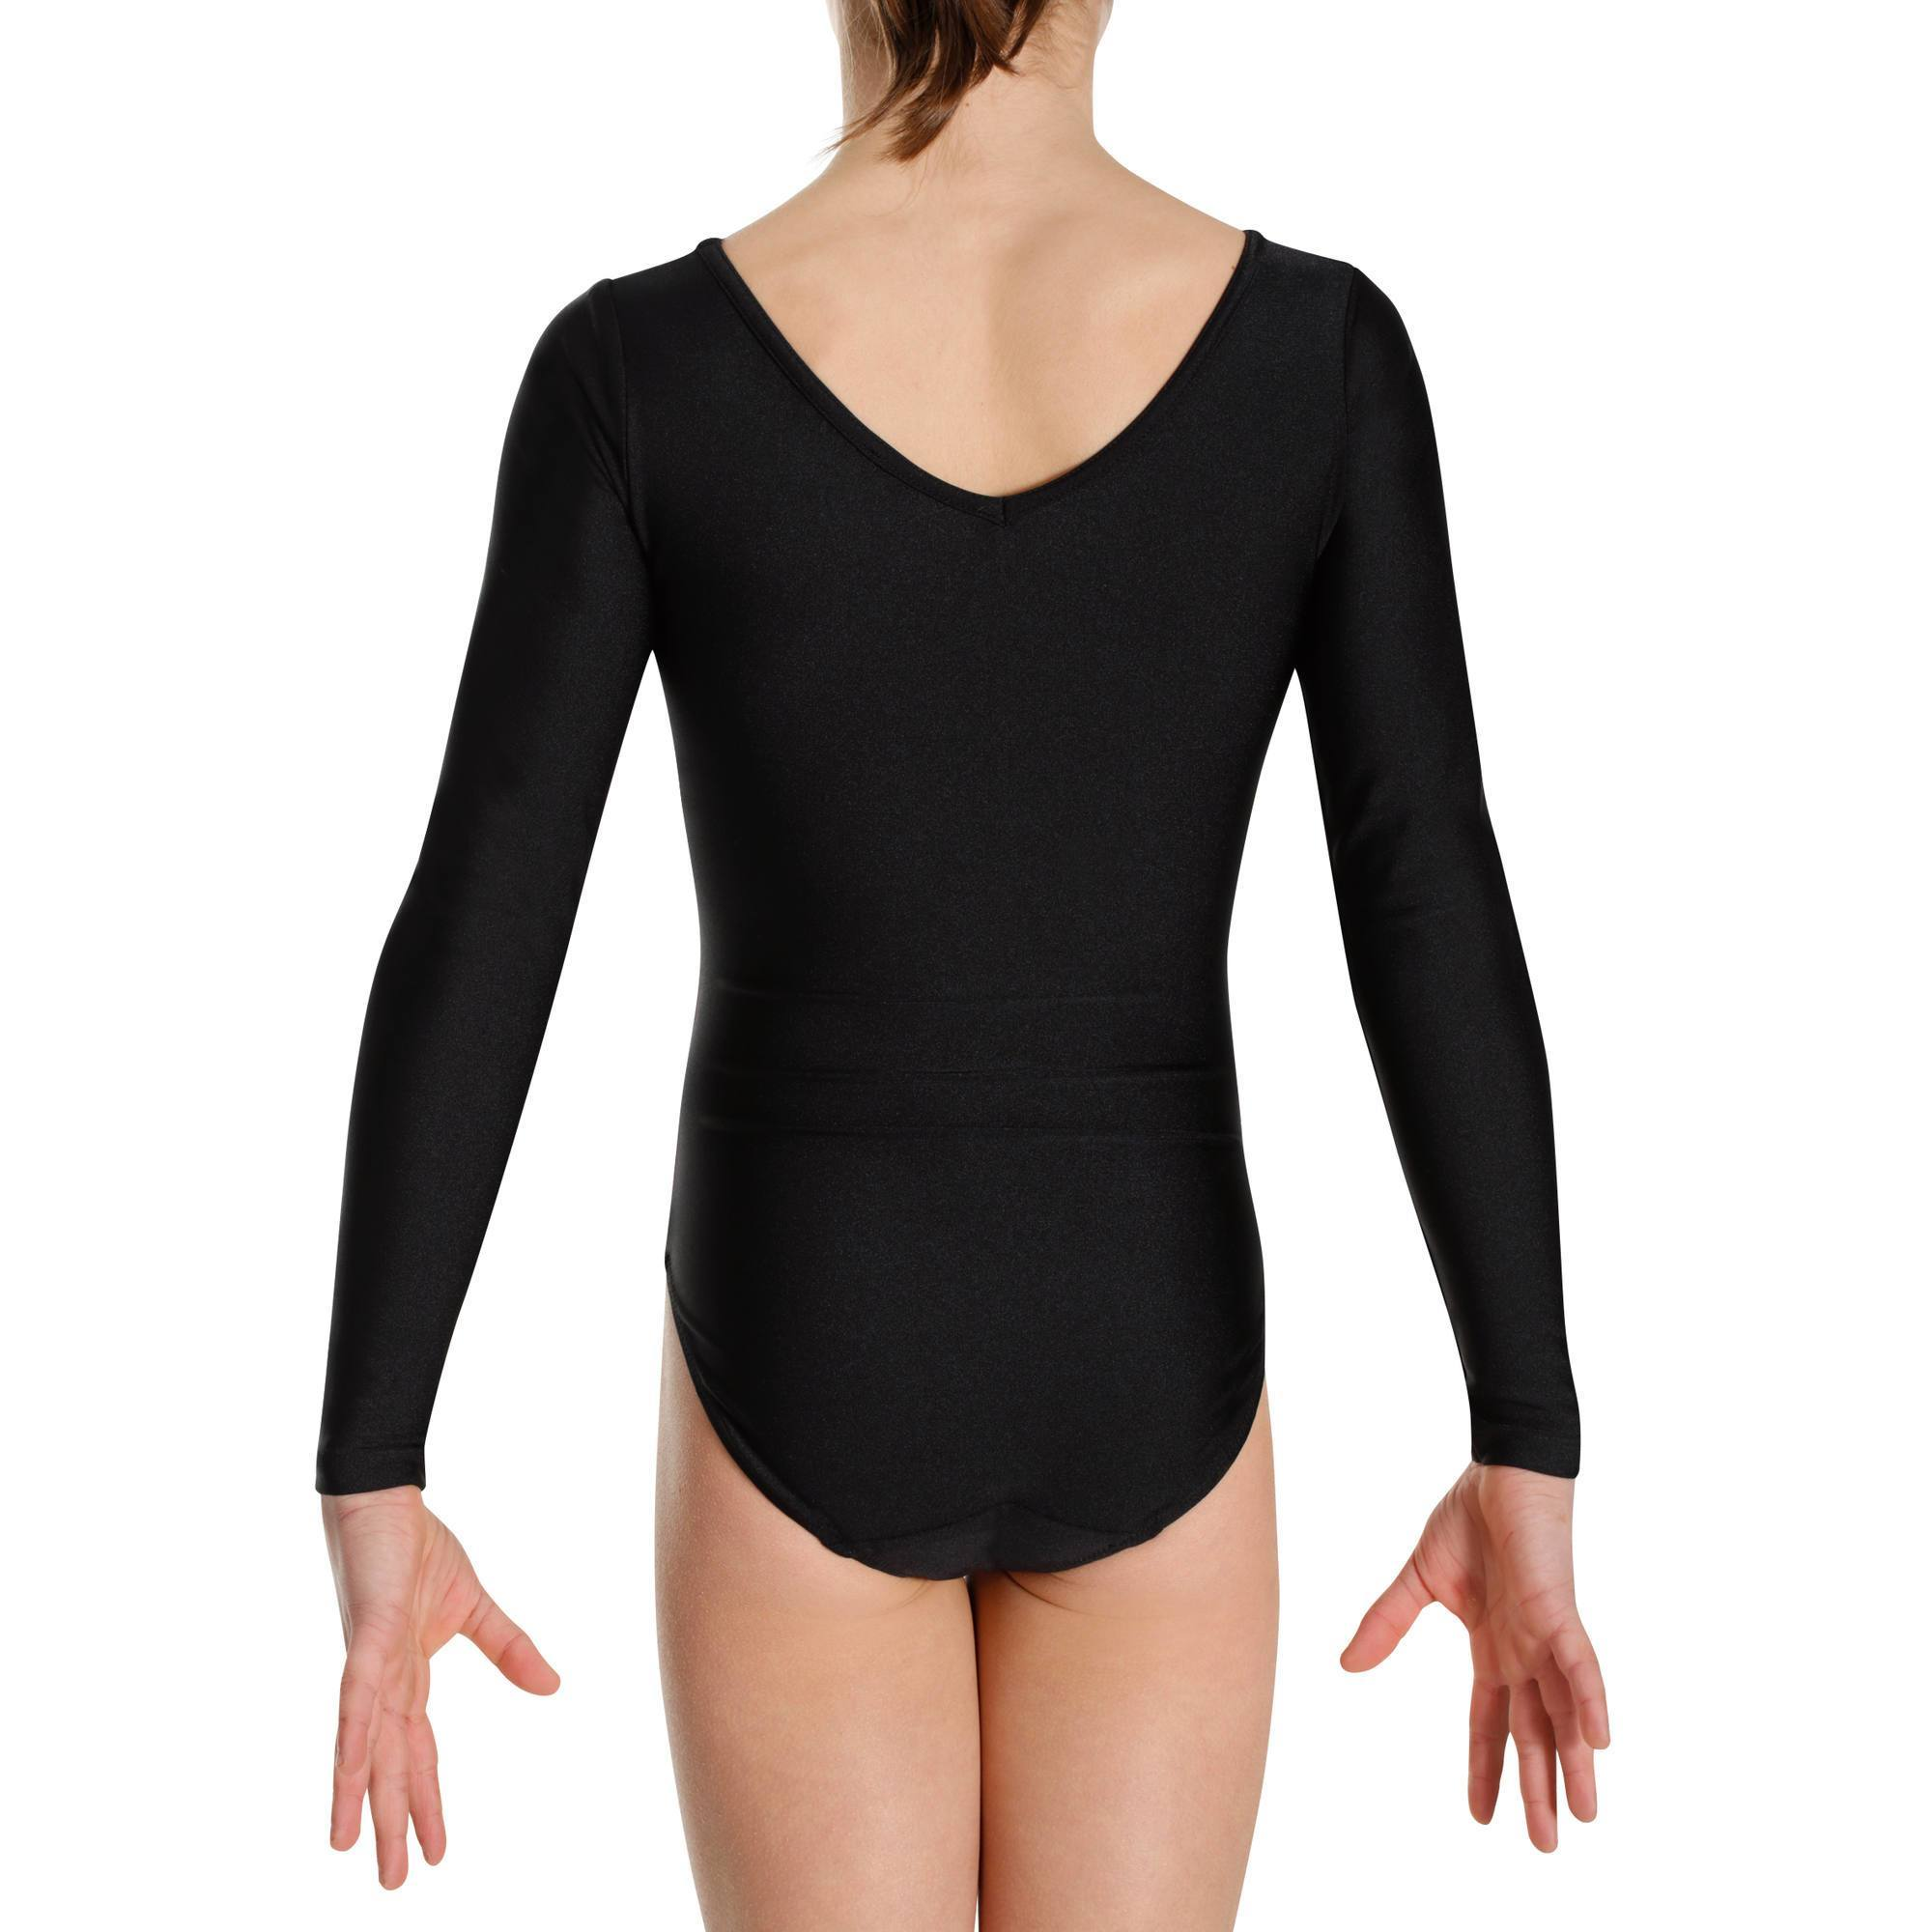 Justaucorps manches longues Gym Fille Noir-Rose - Clubs ... bc13a2ee8db